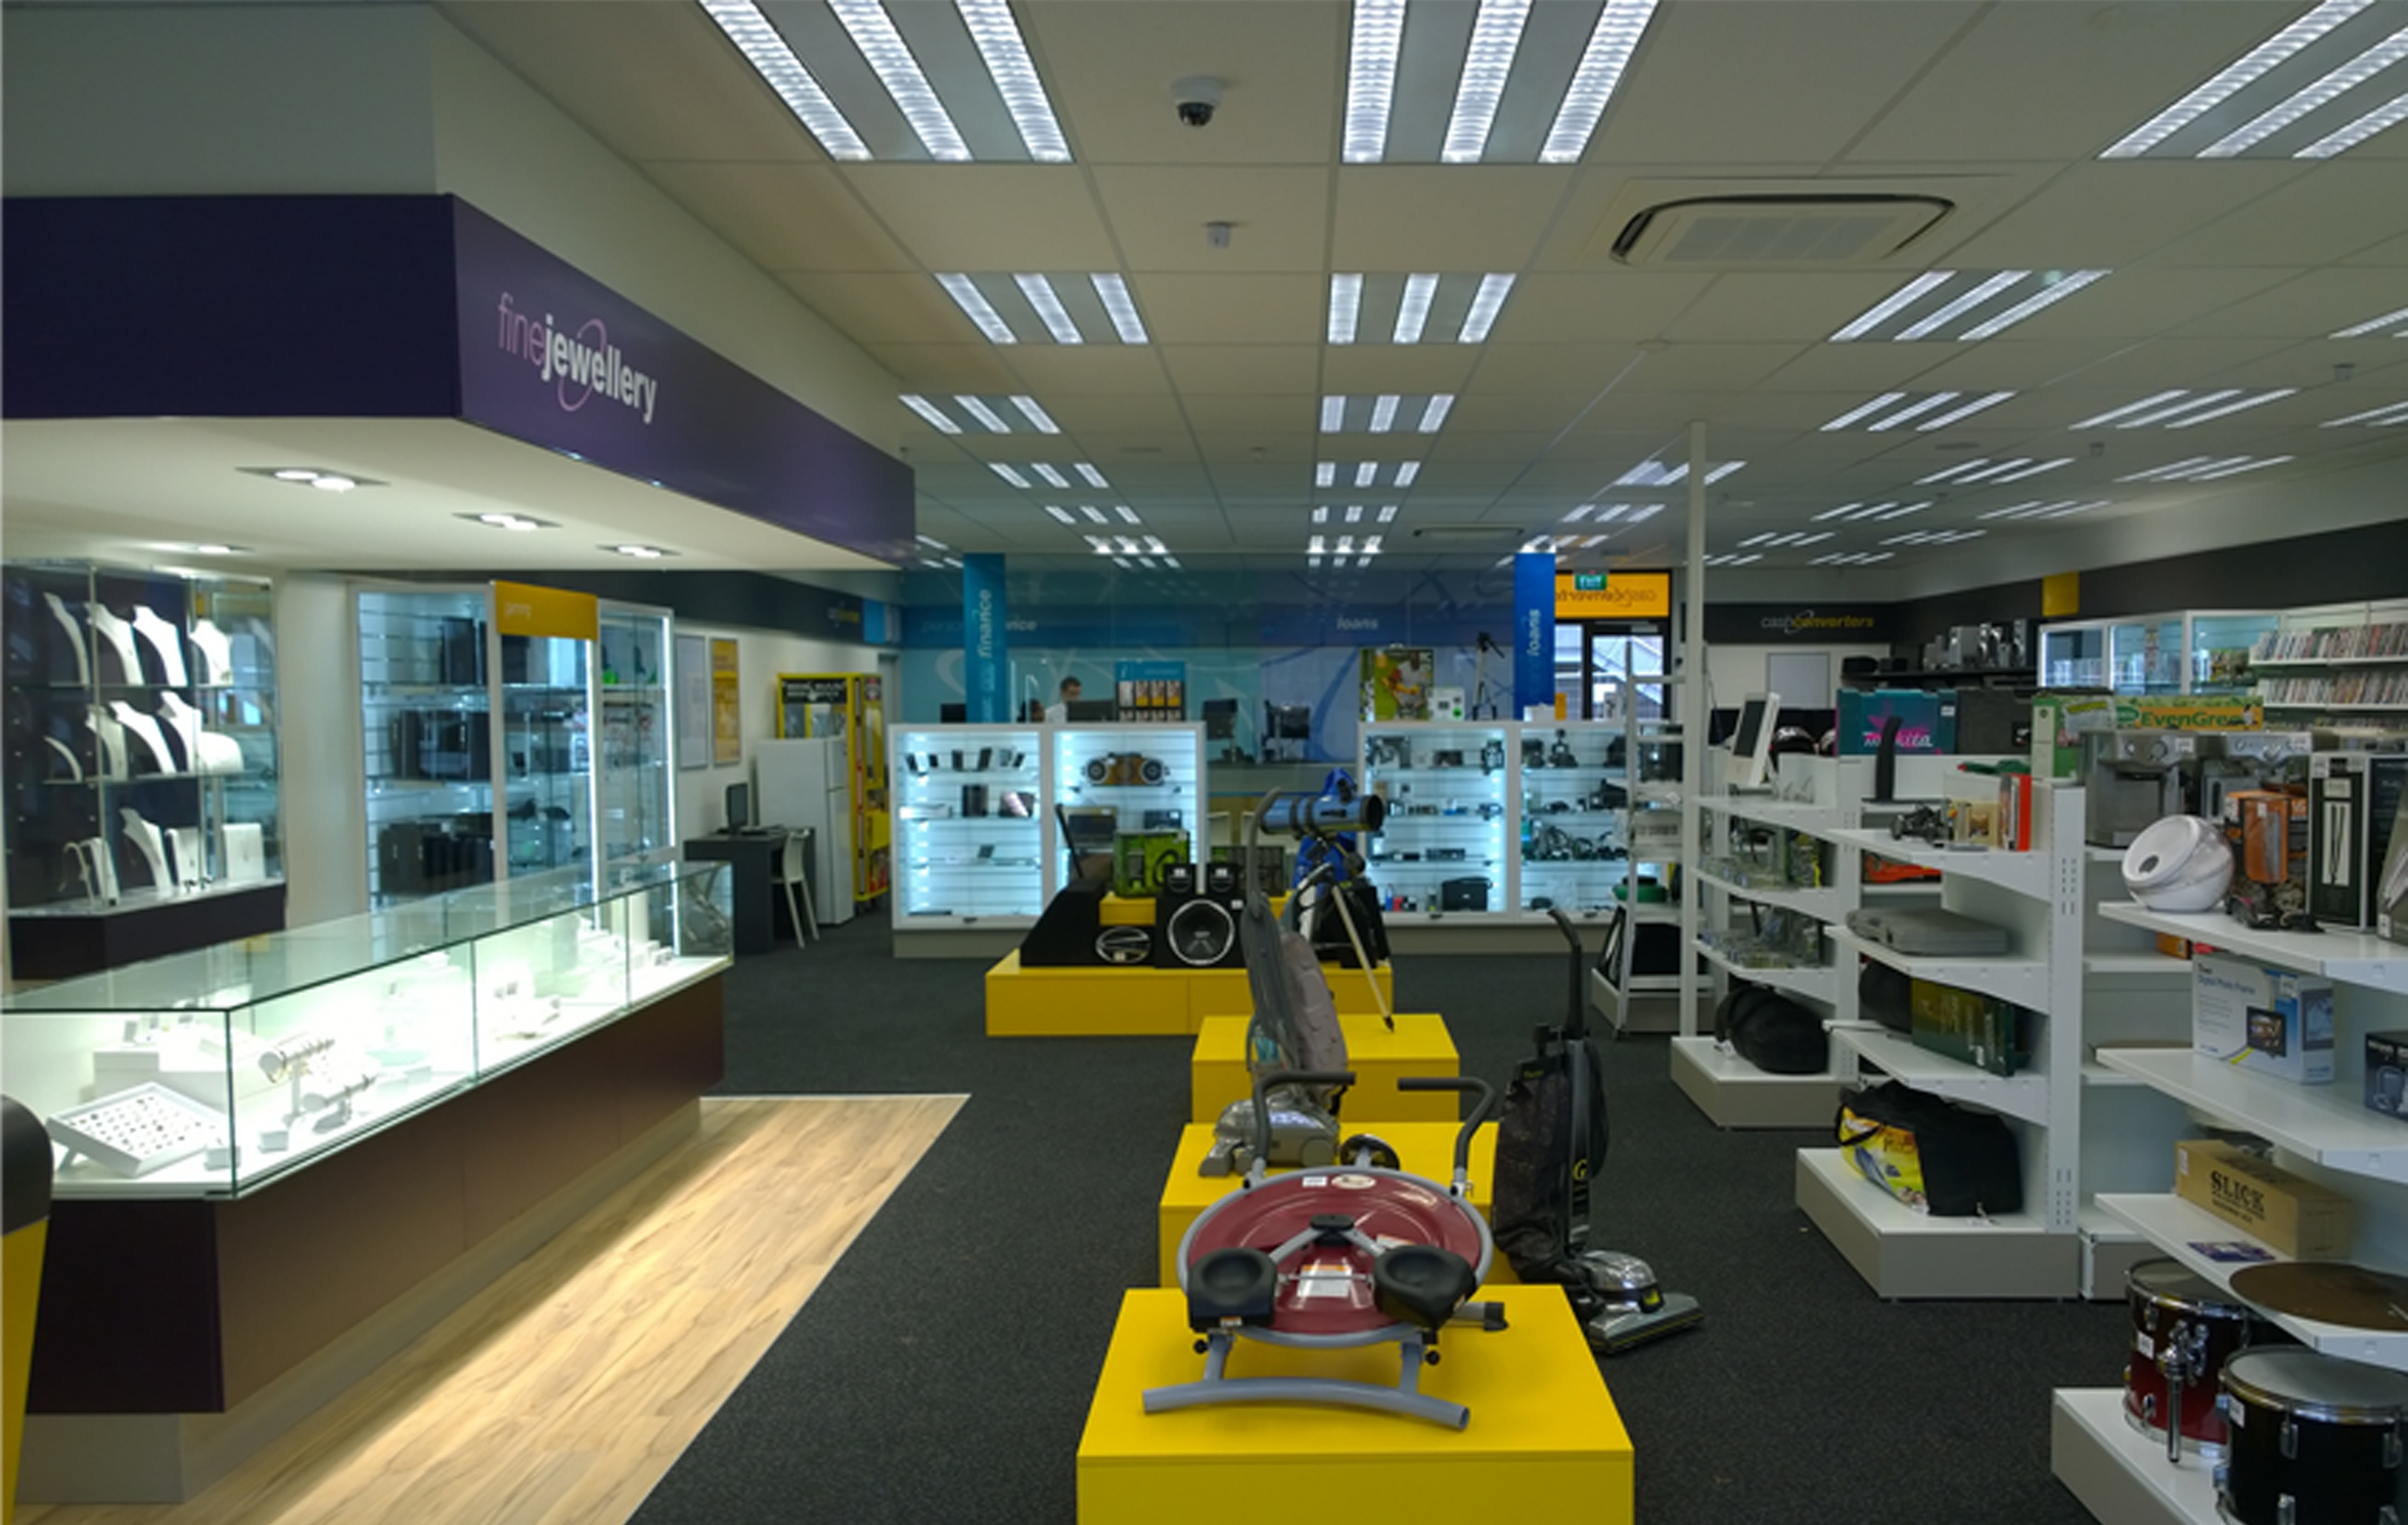 General size of a Cash Converters store is around 350sqm. Includes retail and inventory space